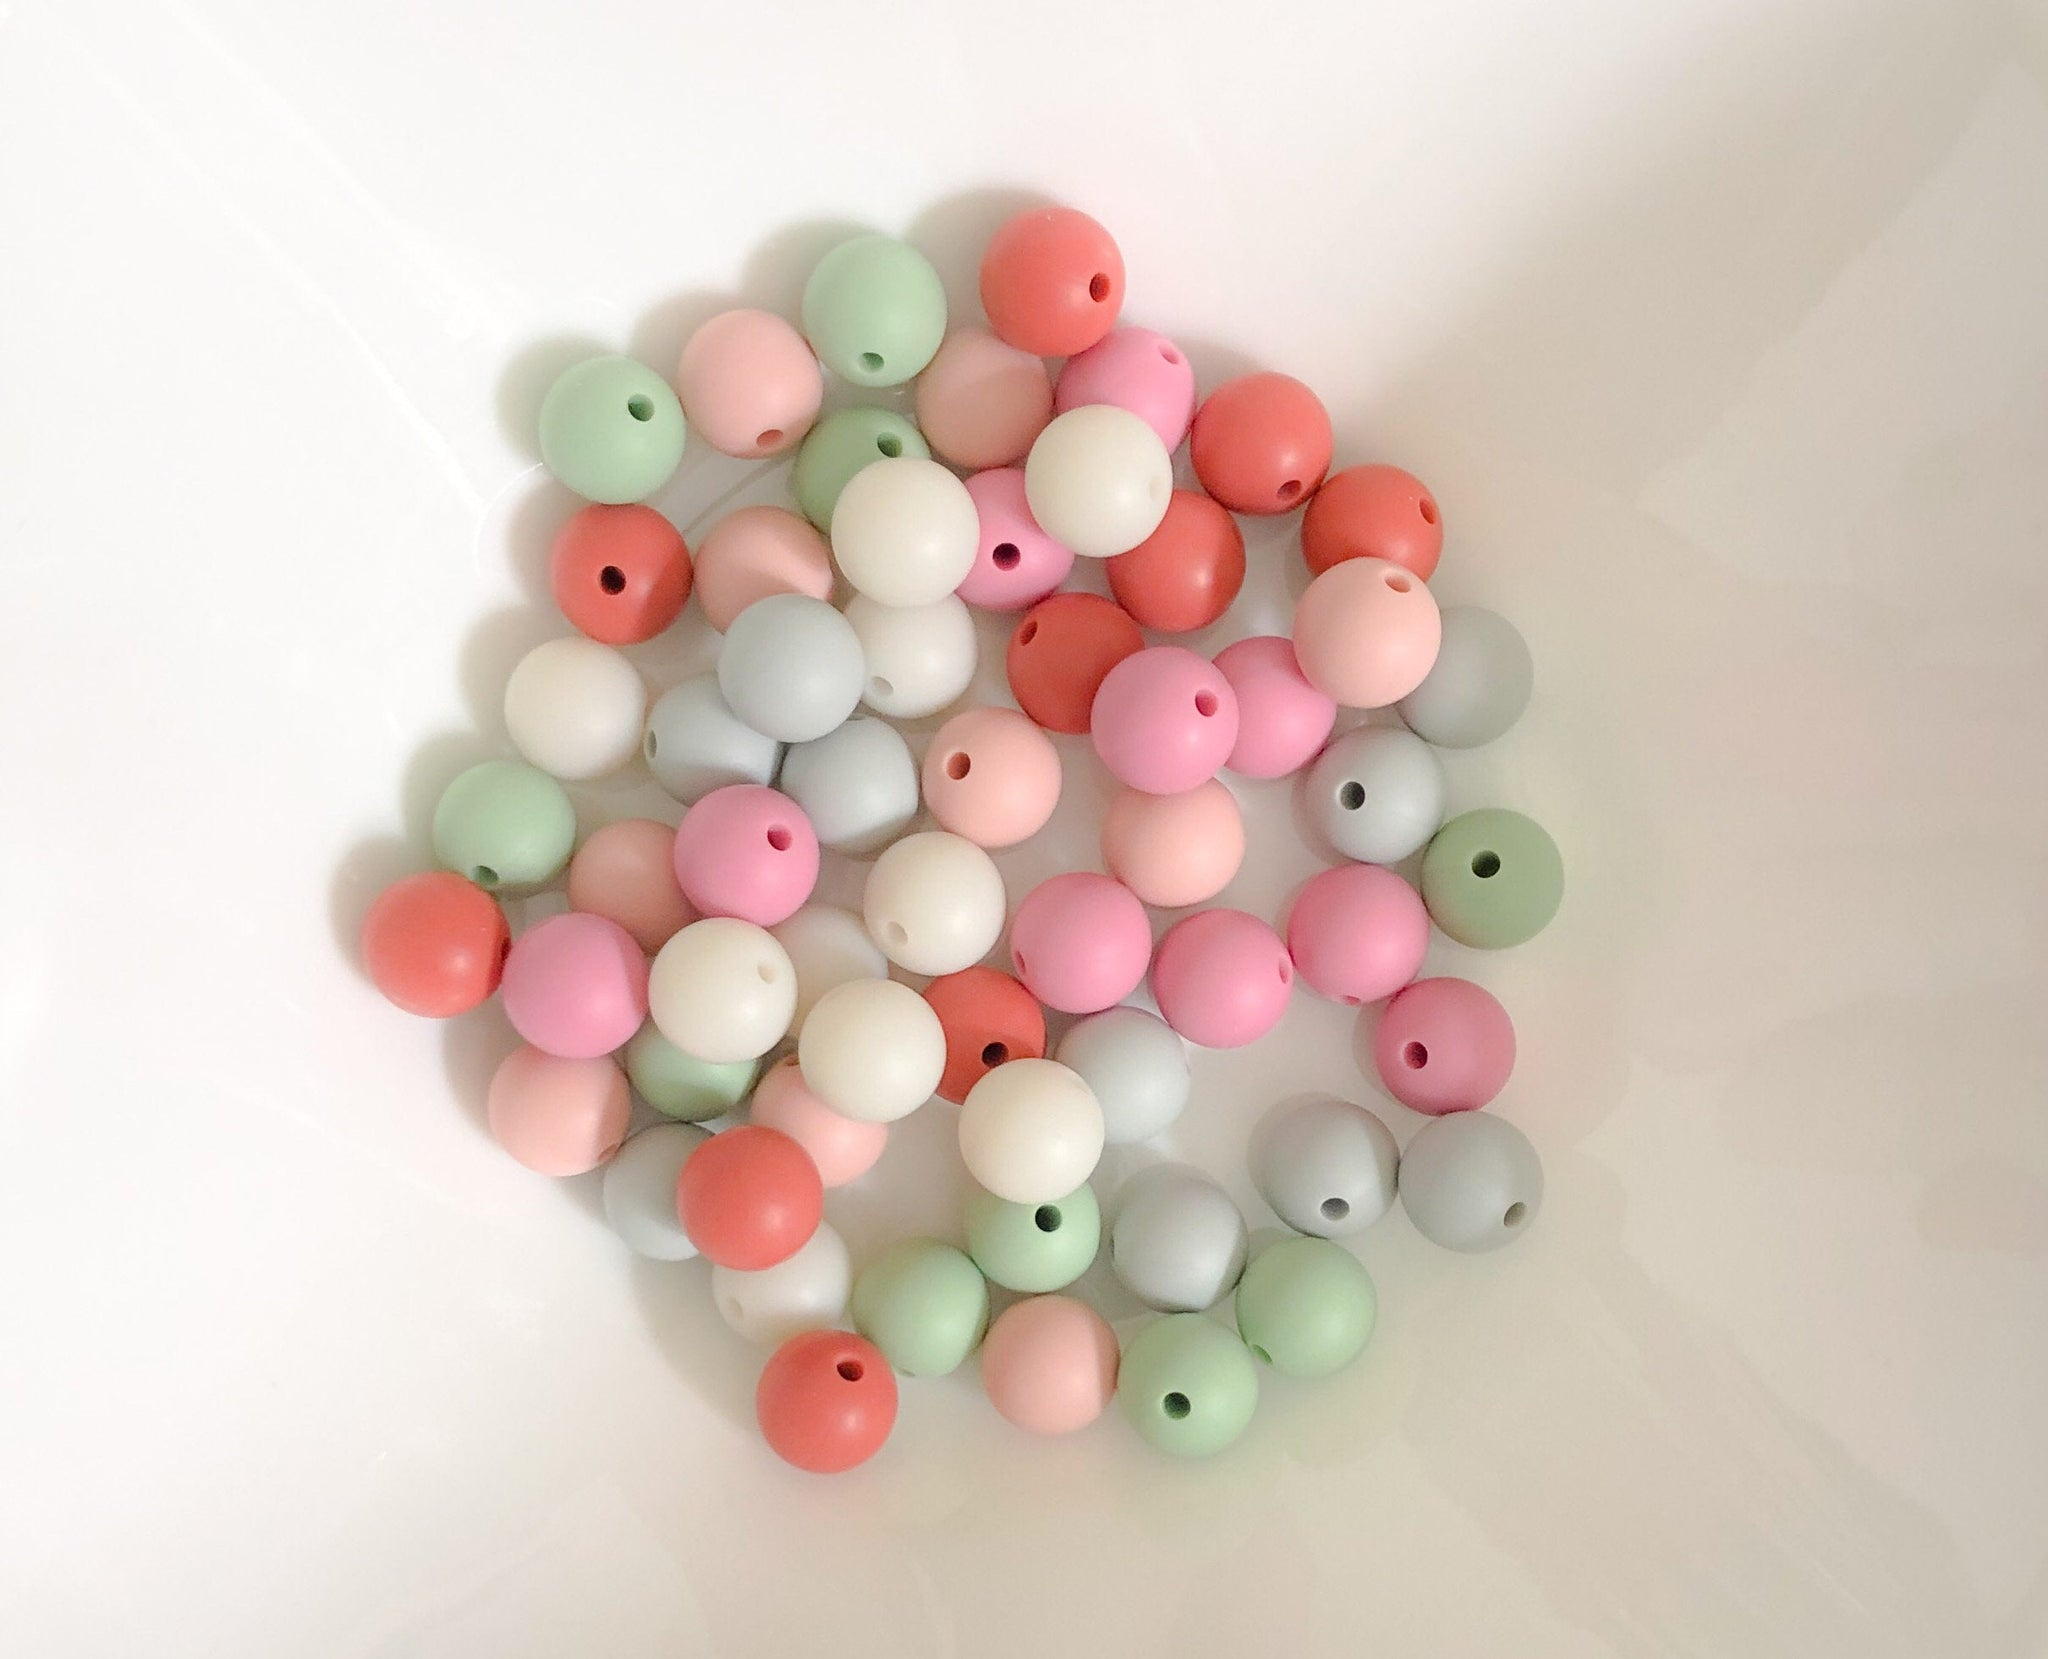 60 Bulk Silicone Teething Beads - Wisp - Dove, Sweet Mint, Terra, Petal, Orchid, and Seal - Bulk Silicone Beads Wholesale